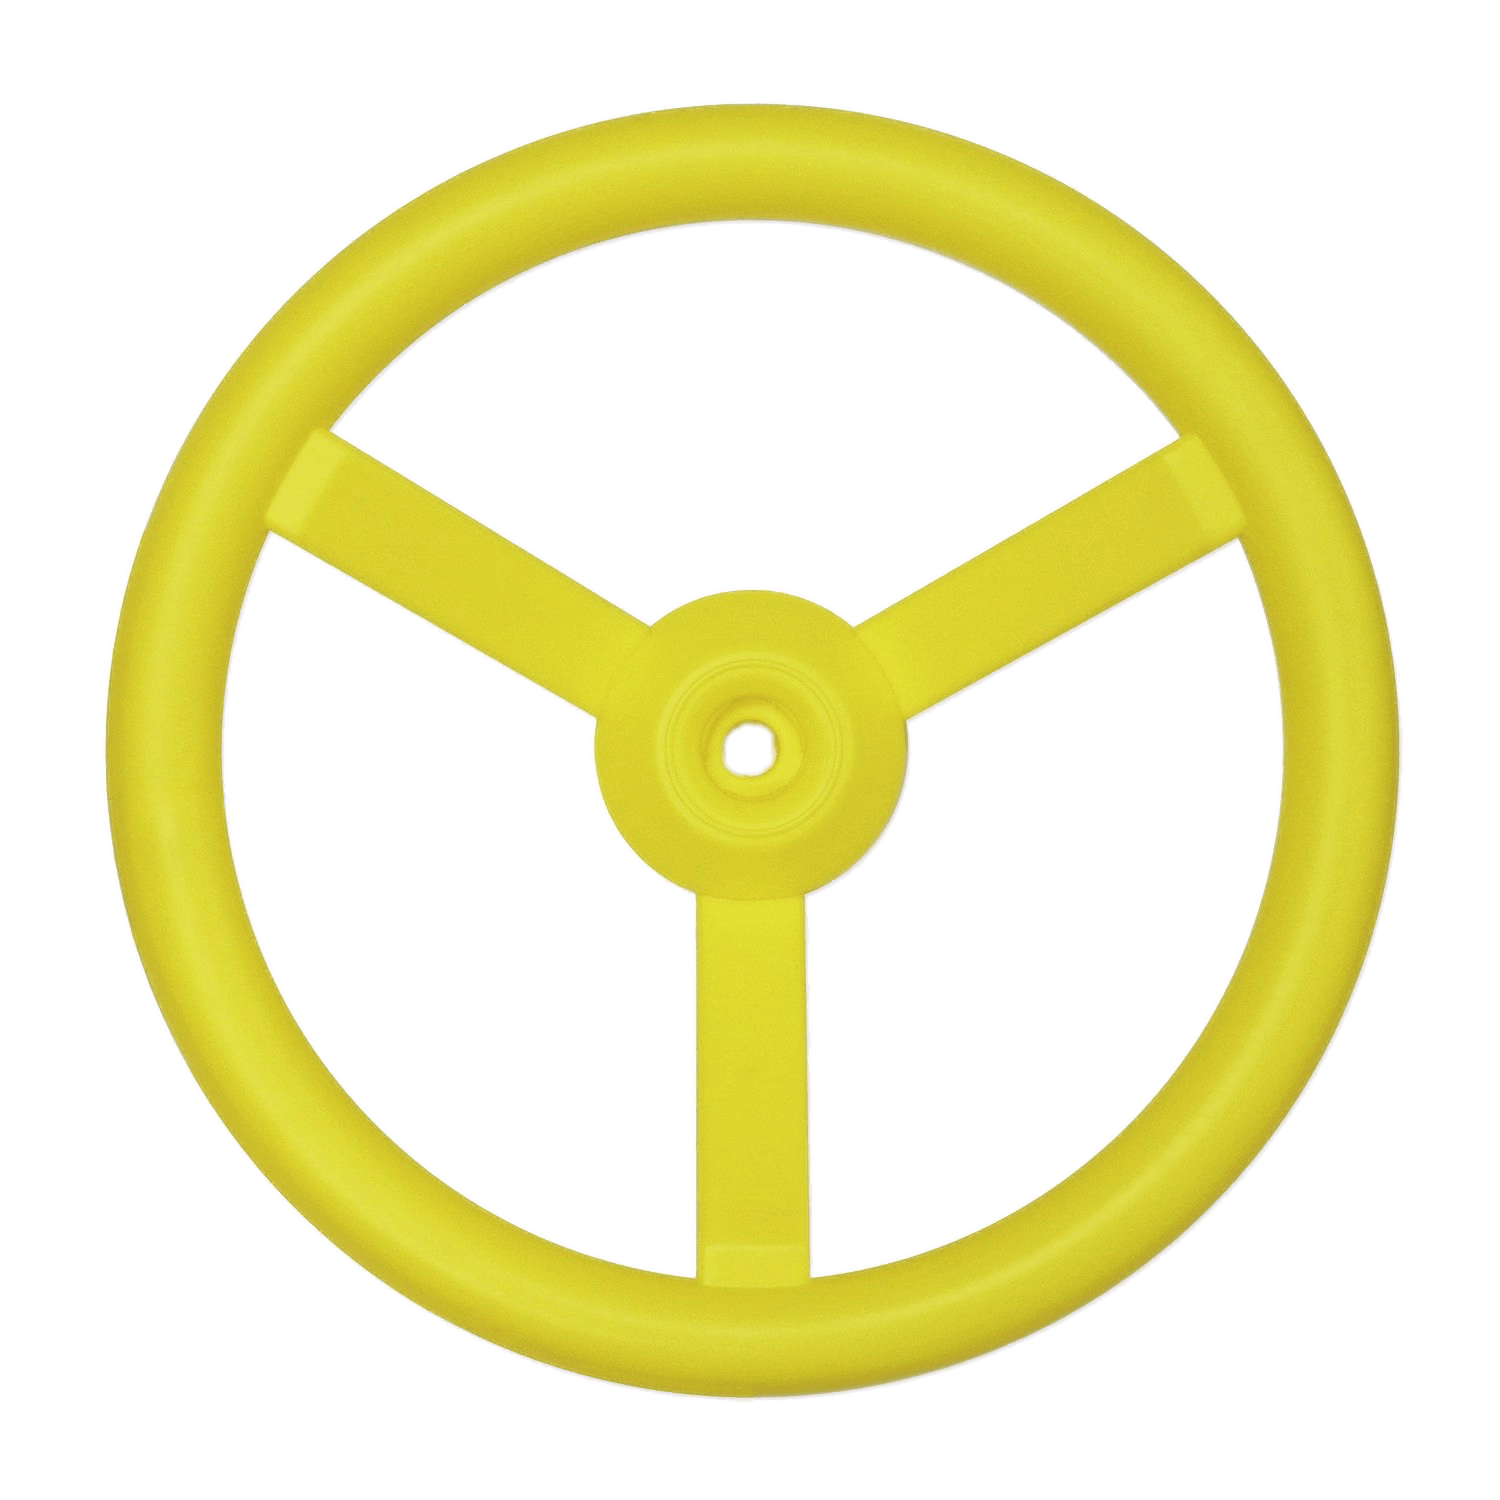 Steering wheel clipart png muscle car. Yellow transparent stickpng